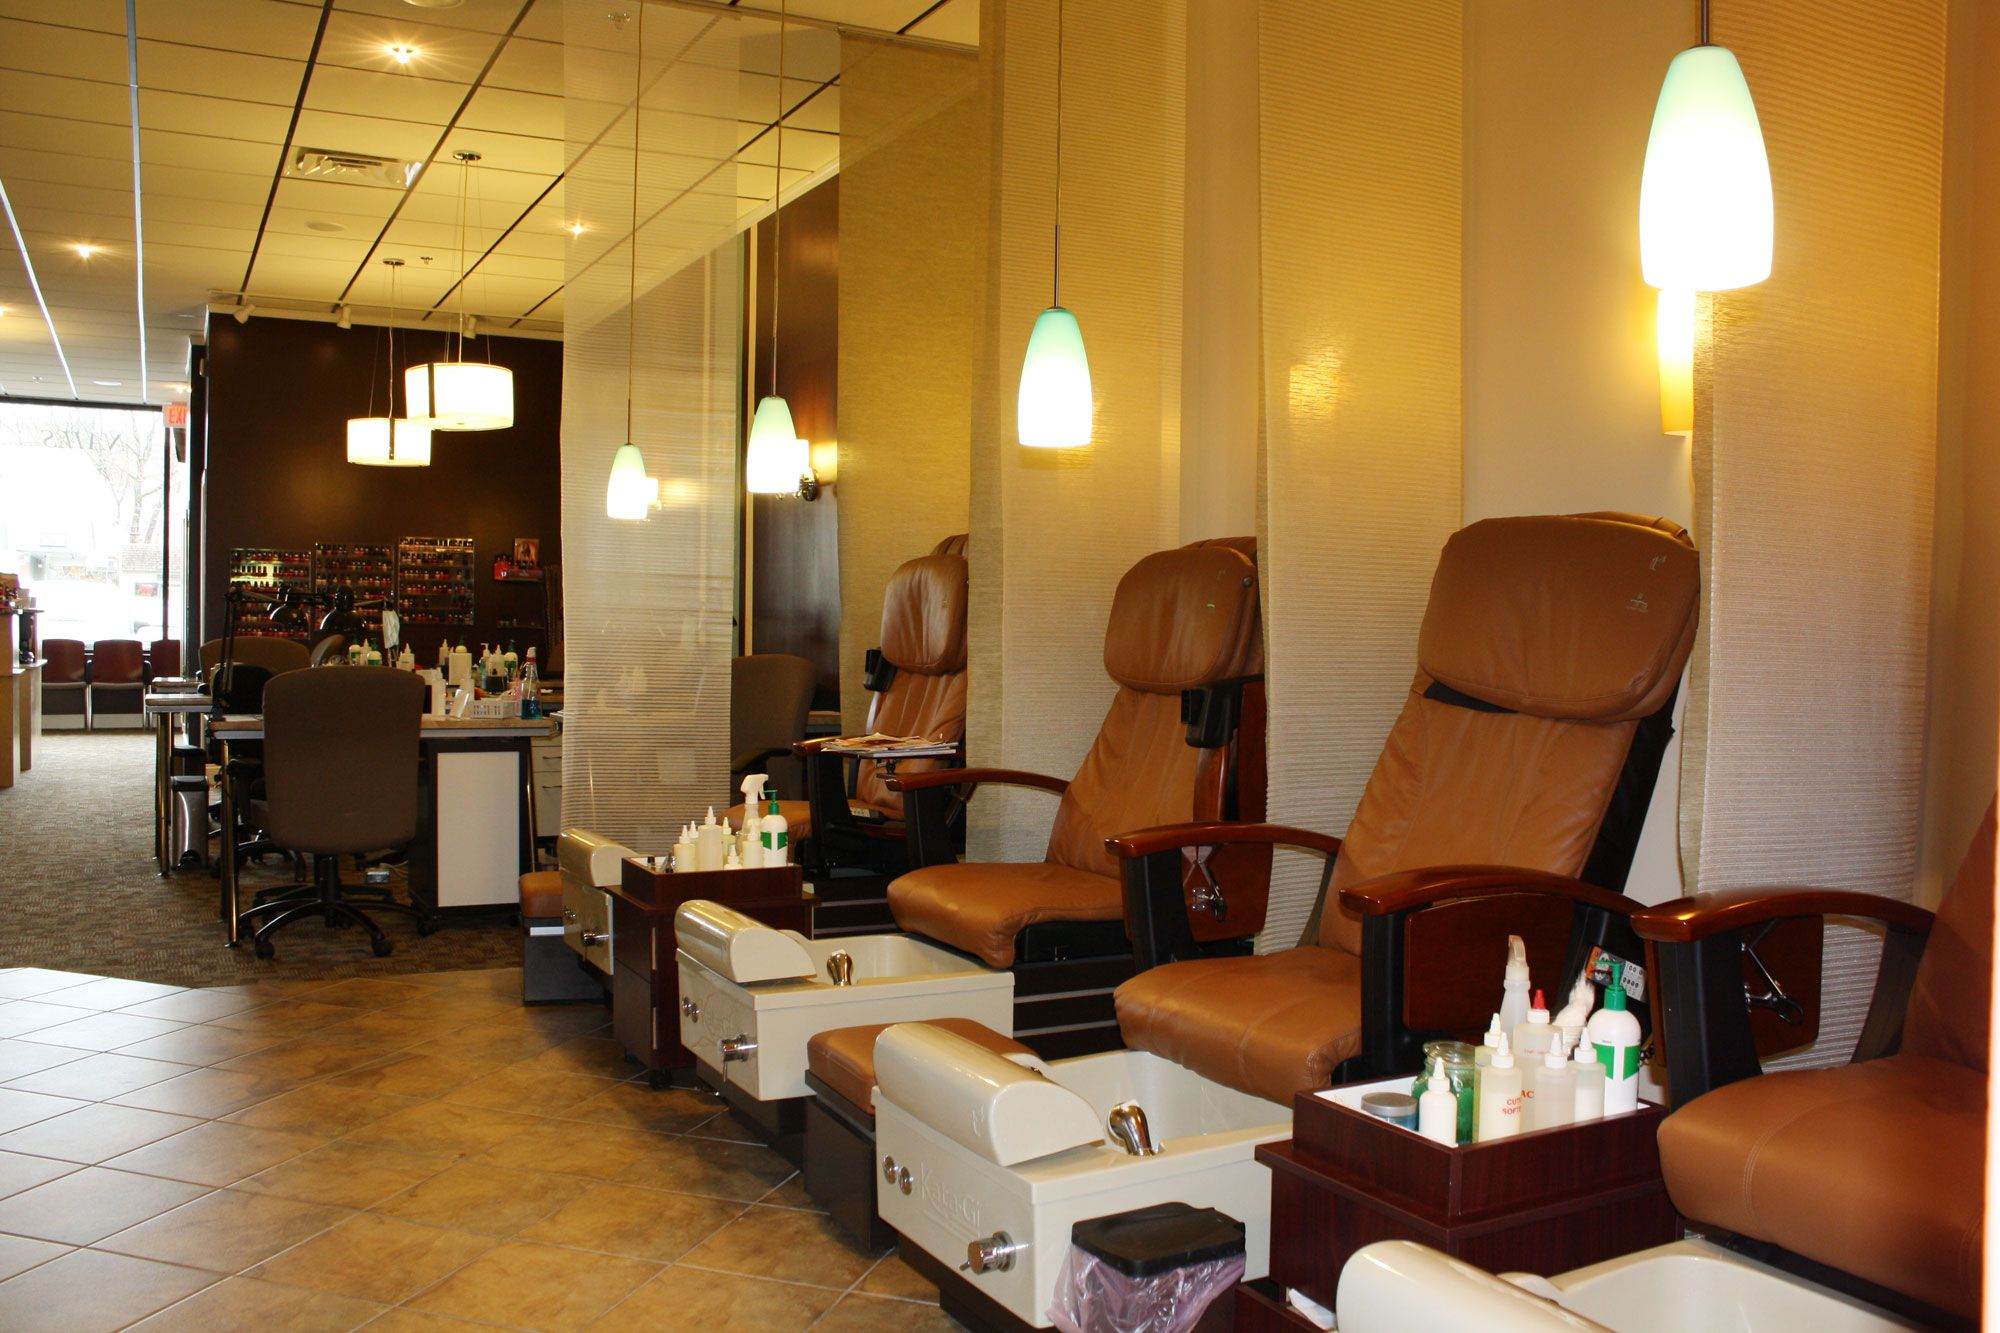 Nail salon chairs care needs only quality nail products for Nail salon furniture suppliers